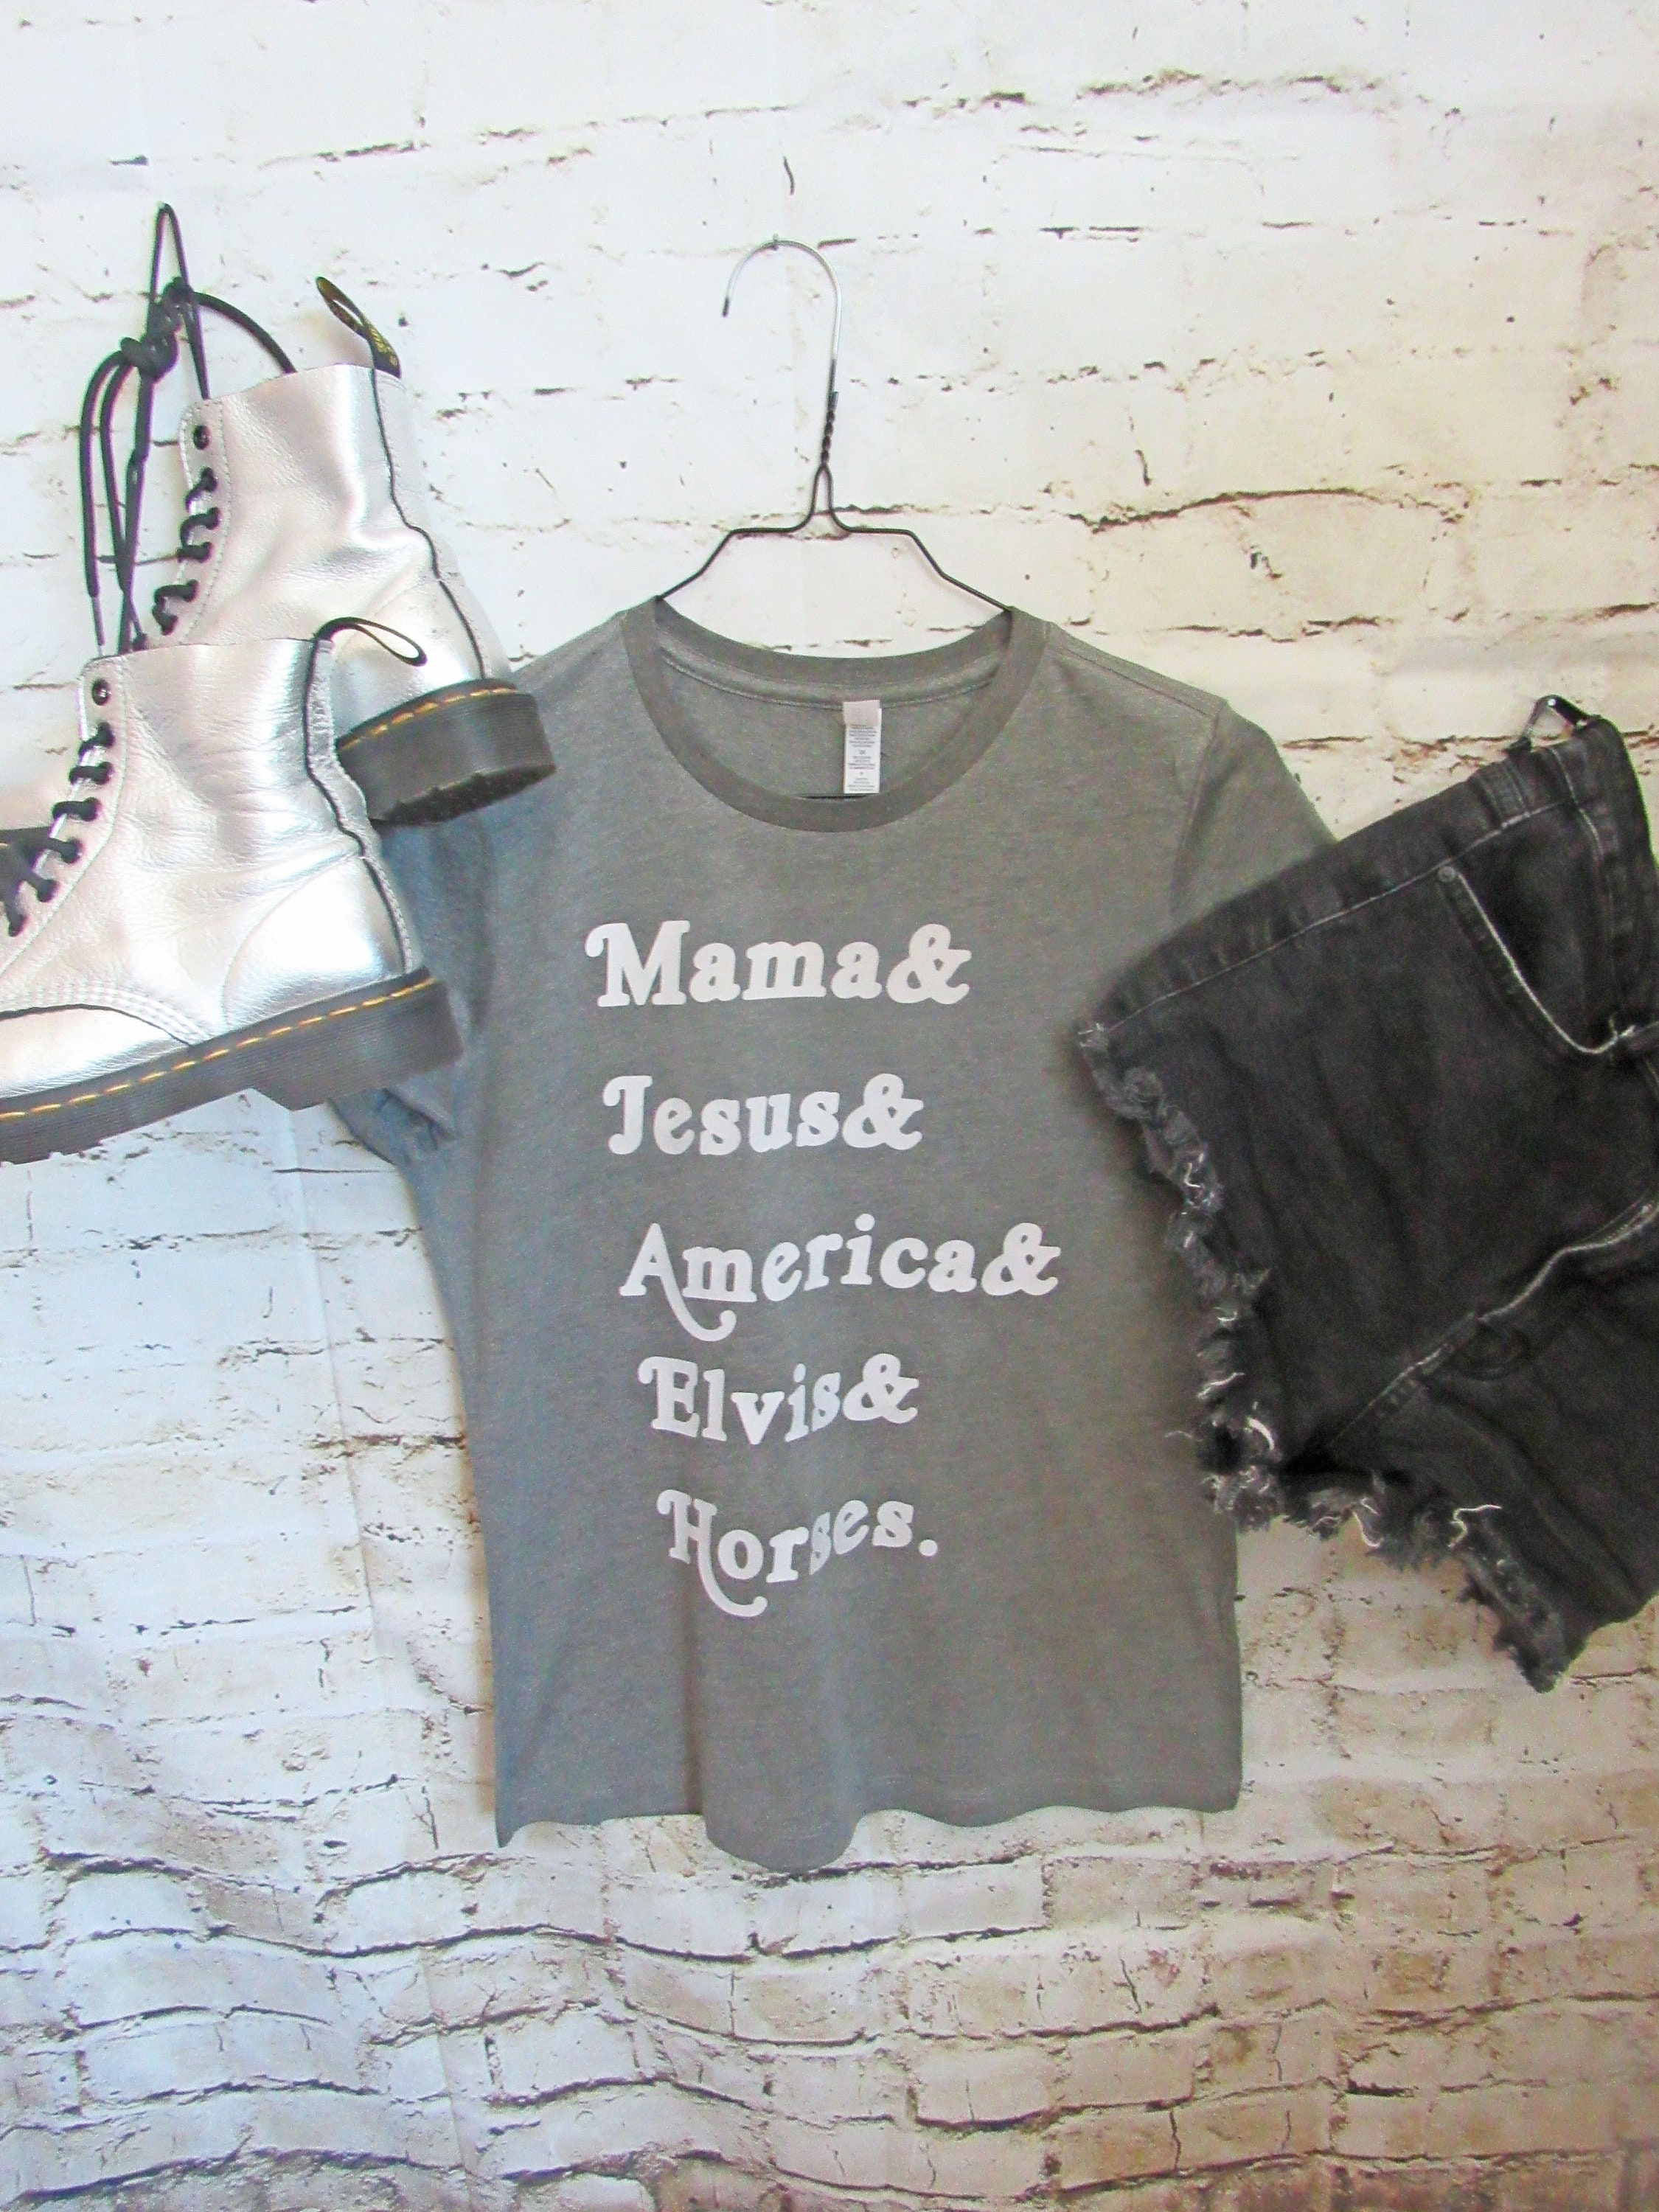 f9c9eff6 Tom Petty shirt/ Free Fallin' / Mama/Jesus/America/Elvis/Horses/ Womans  relaxed fit tee